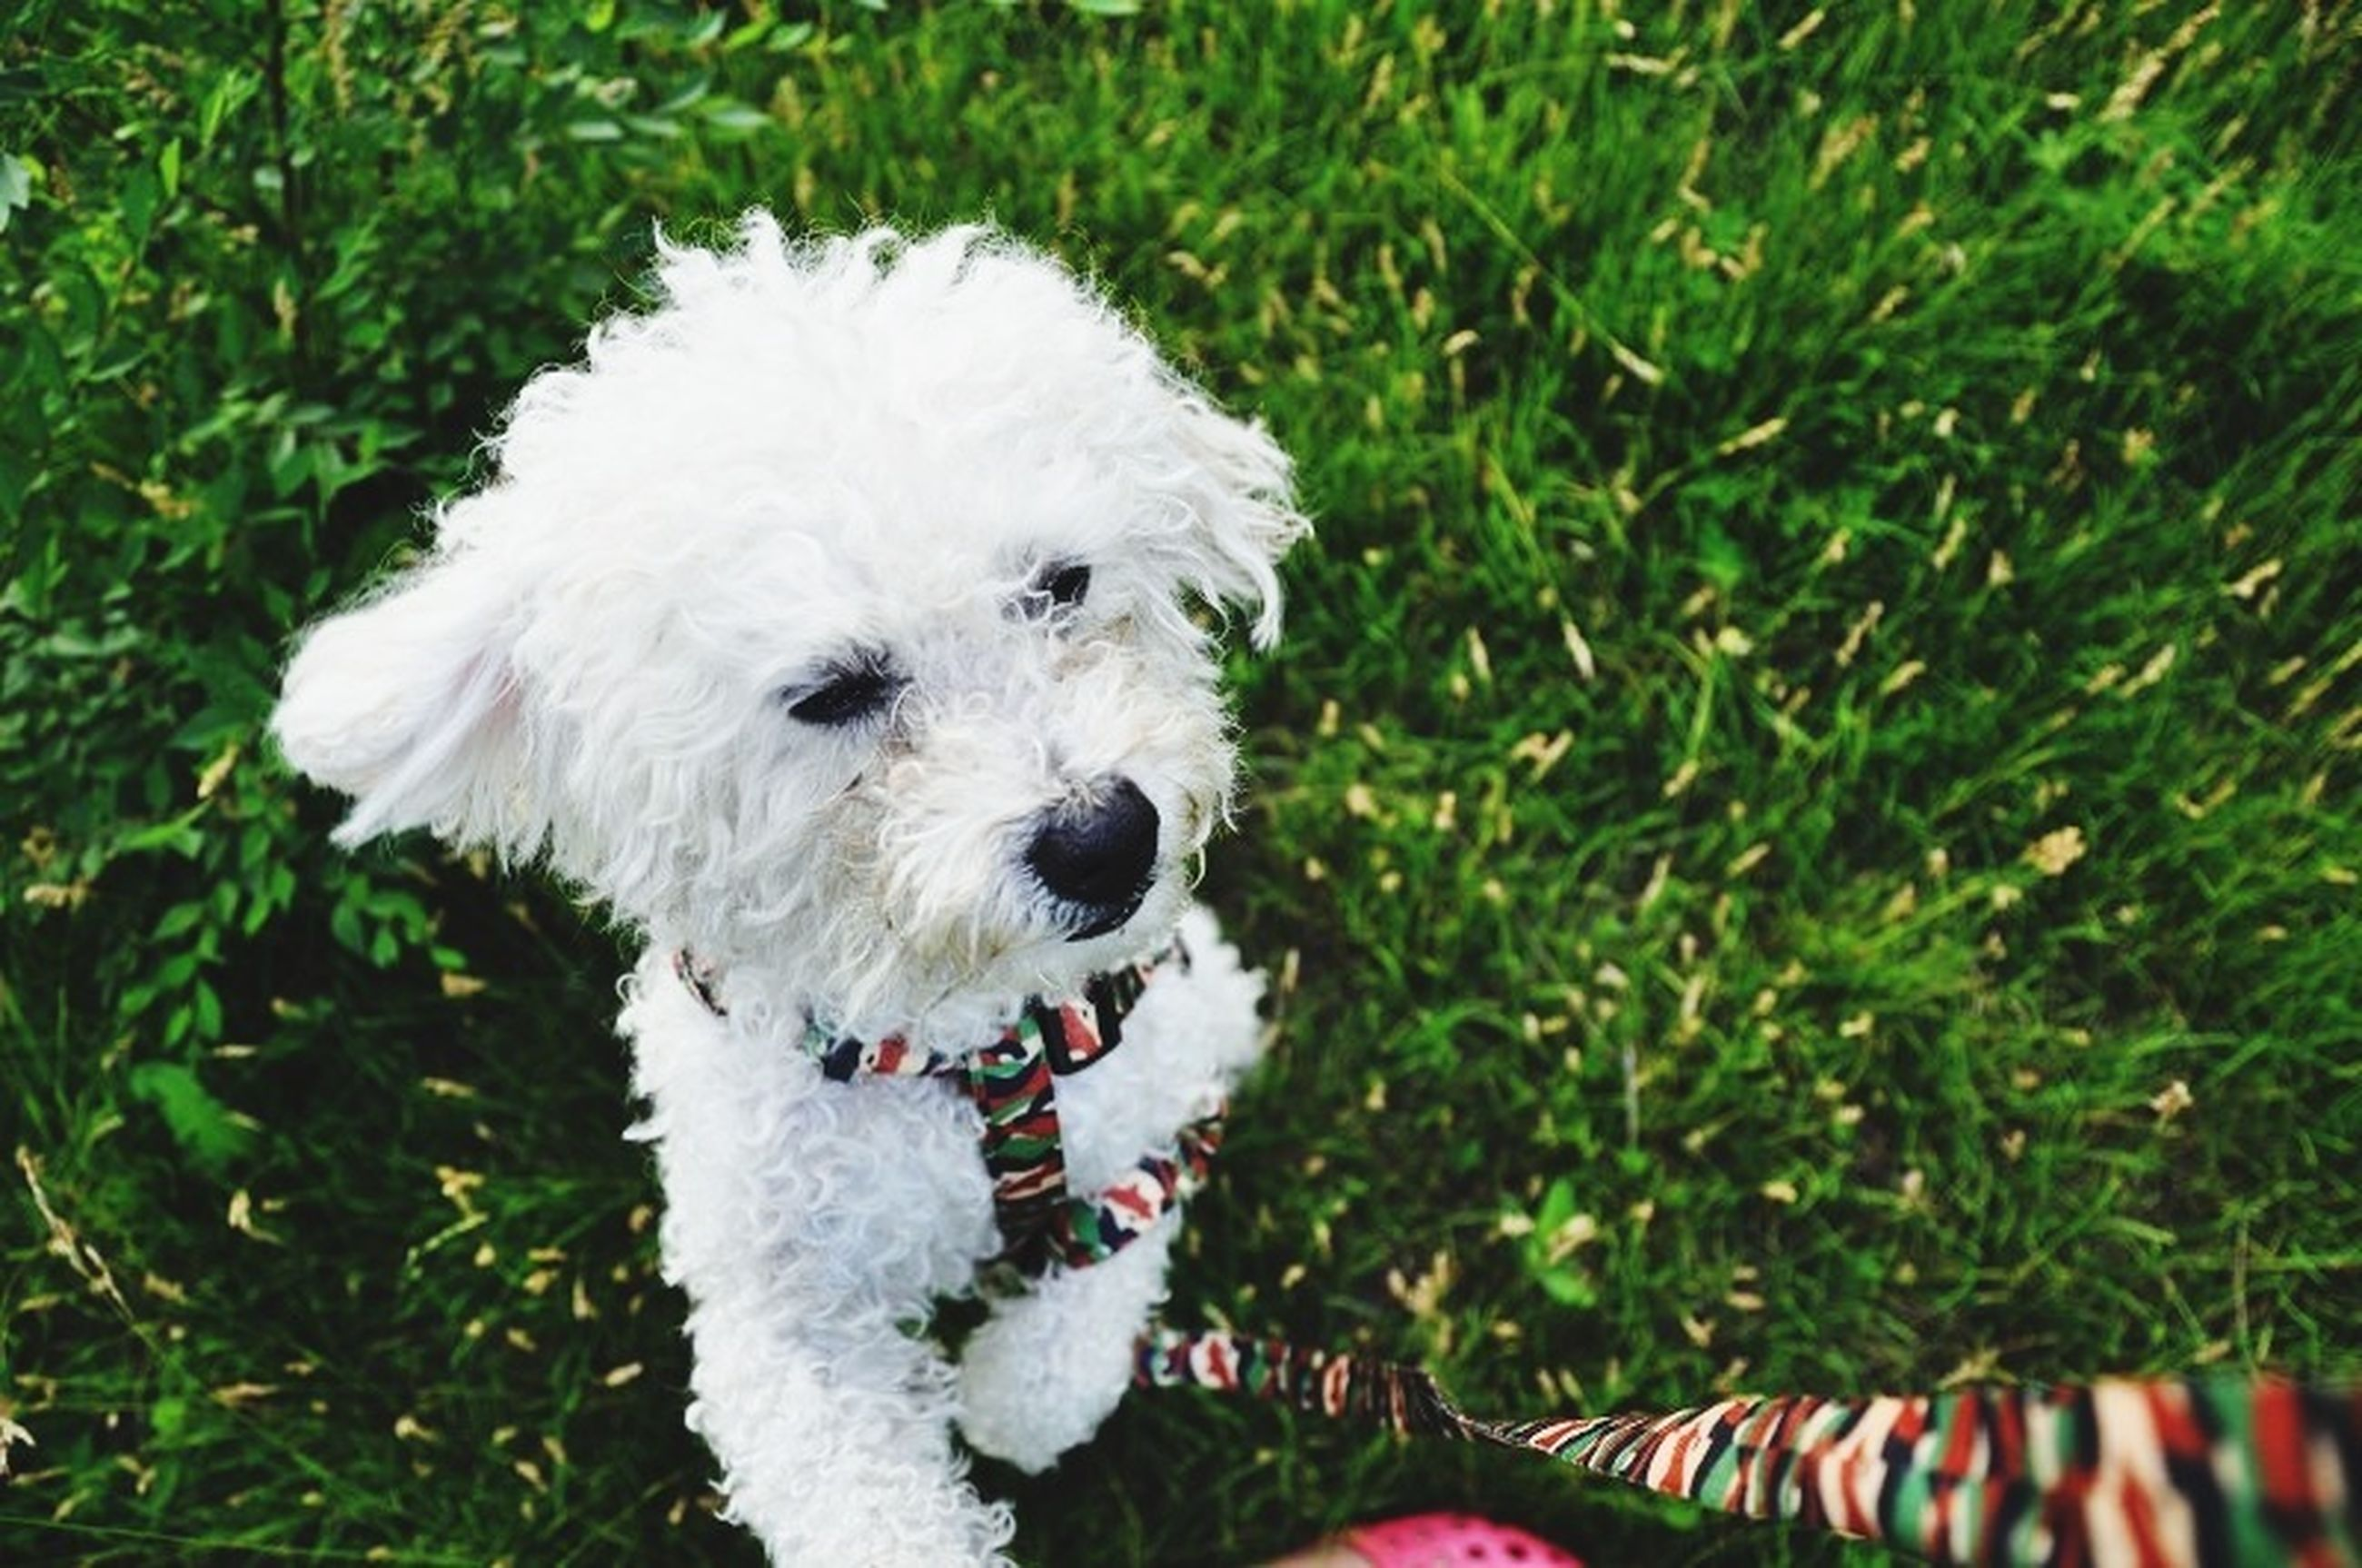 dog, domestic animals, pets, animal themes, one animal, grass, high angle view, mammal, white color, field, grassy, green color, outdoors, day, no people, looking at camera, nature, cute, portrait, close-up